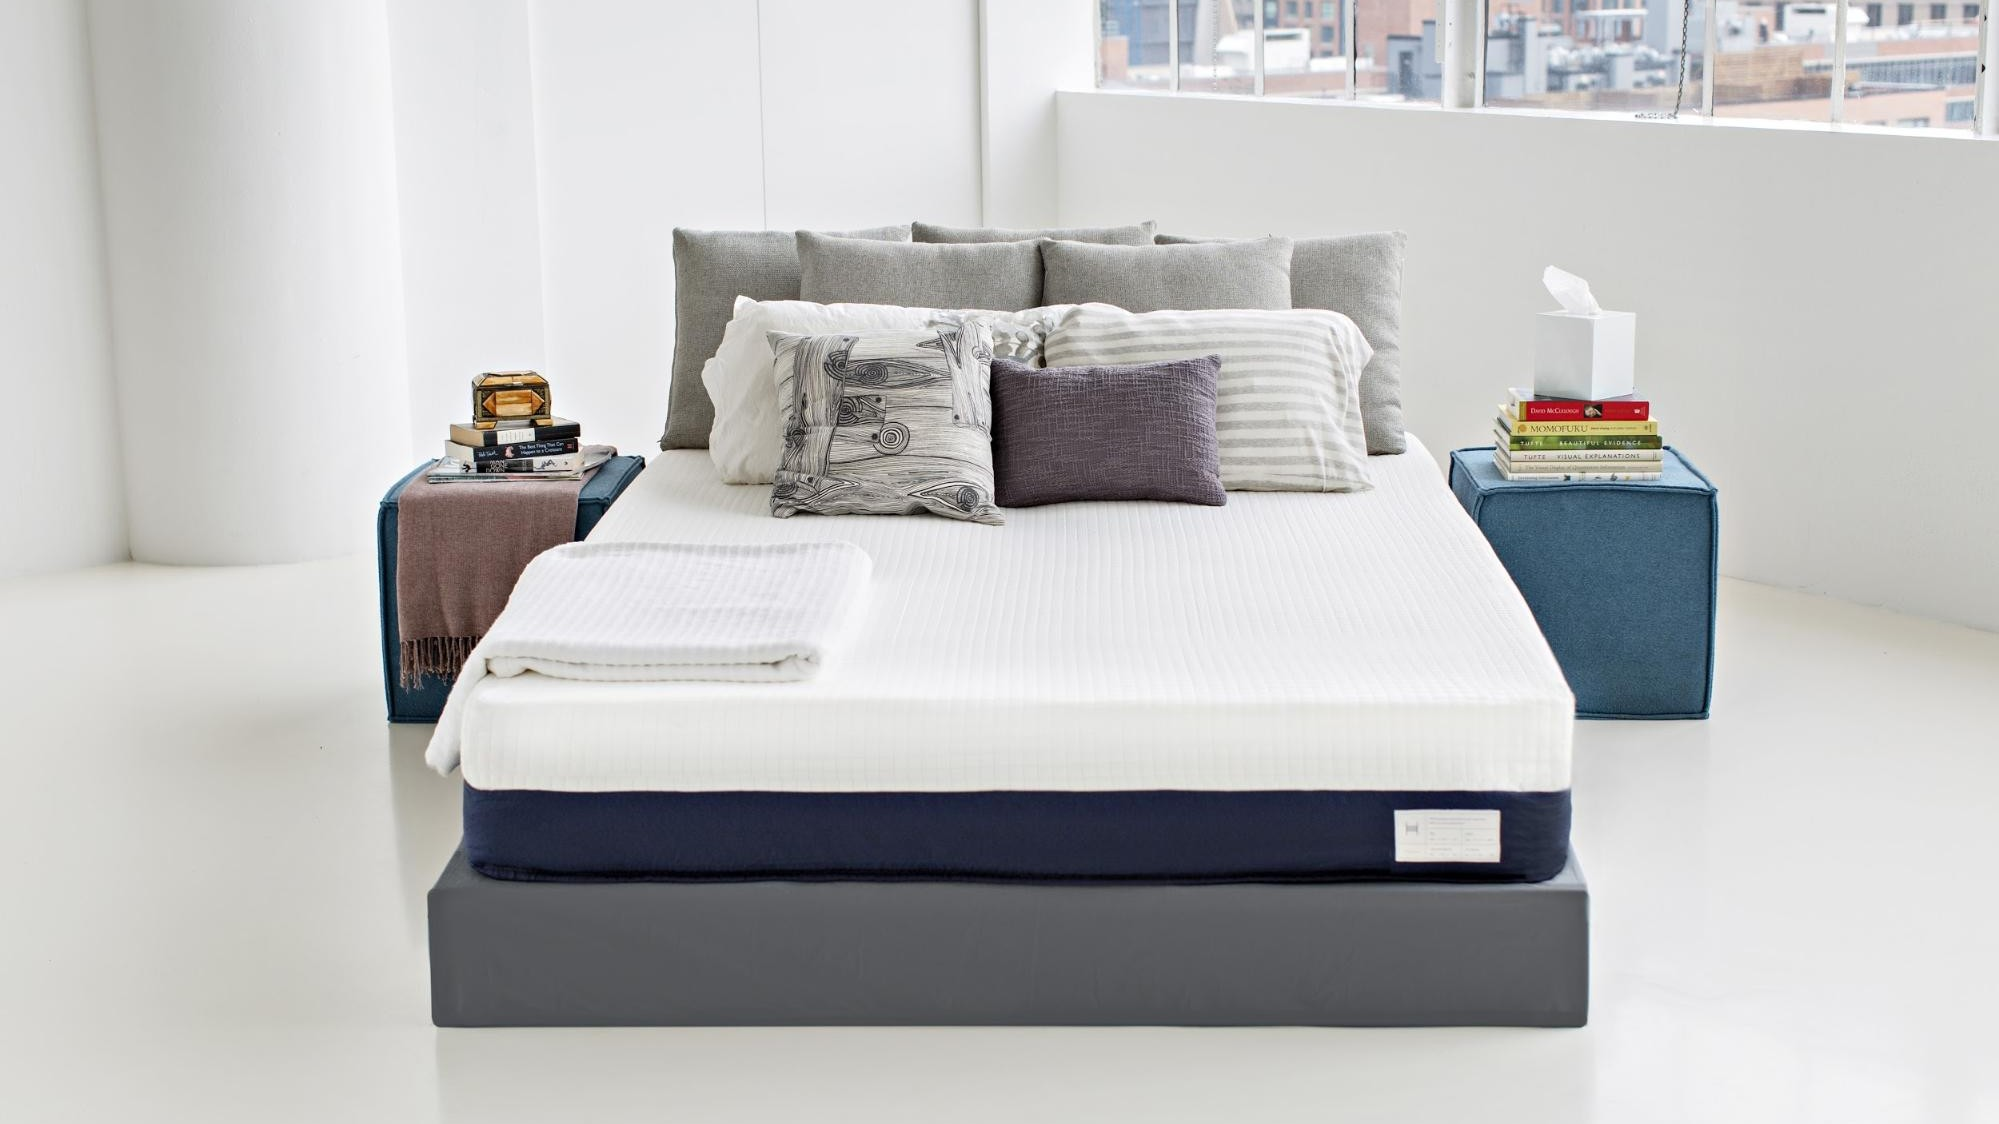 I Tried Out the Customized Mattress of the Future